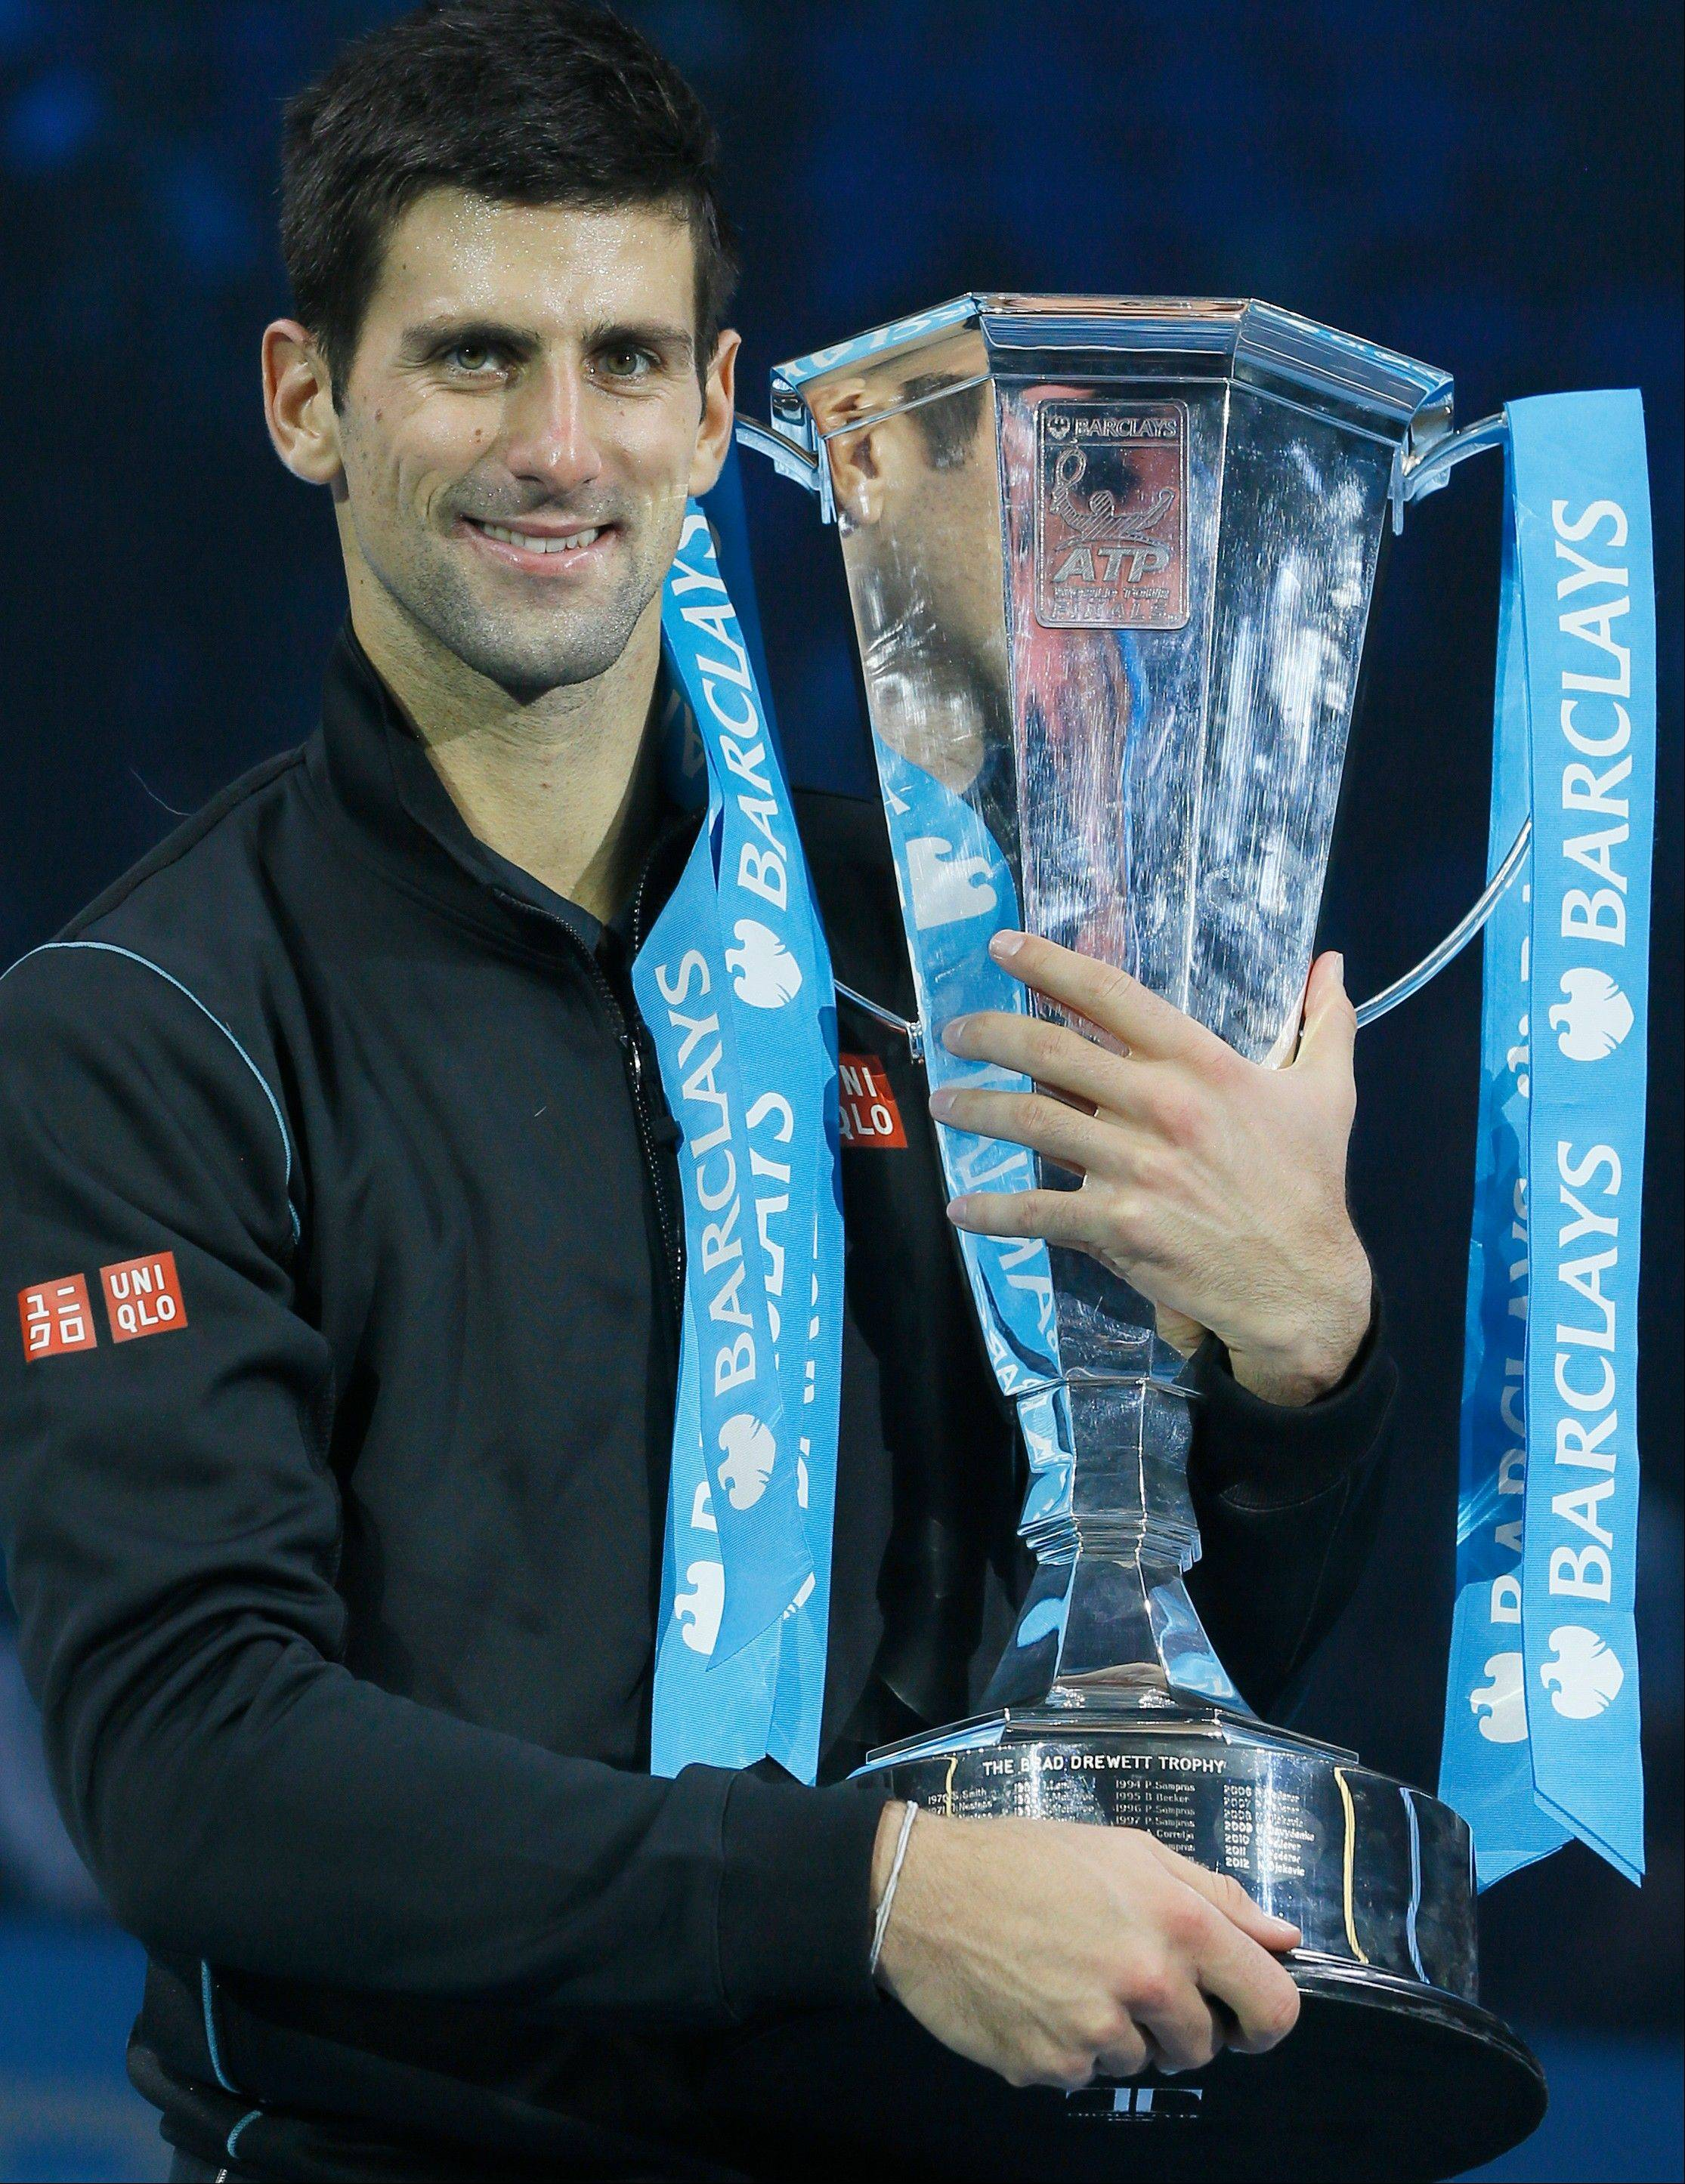 Novak Djokovic of Serbia holds up the ATP World Tour Finals tennis trophy as he poses for photographers after defeating Rafael Nadal of Spain at the O2 Arena in London, Monday, Nov. 11, 2013.